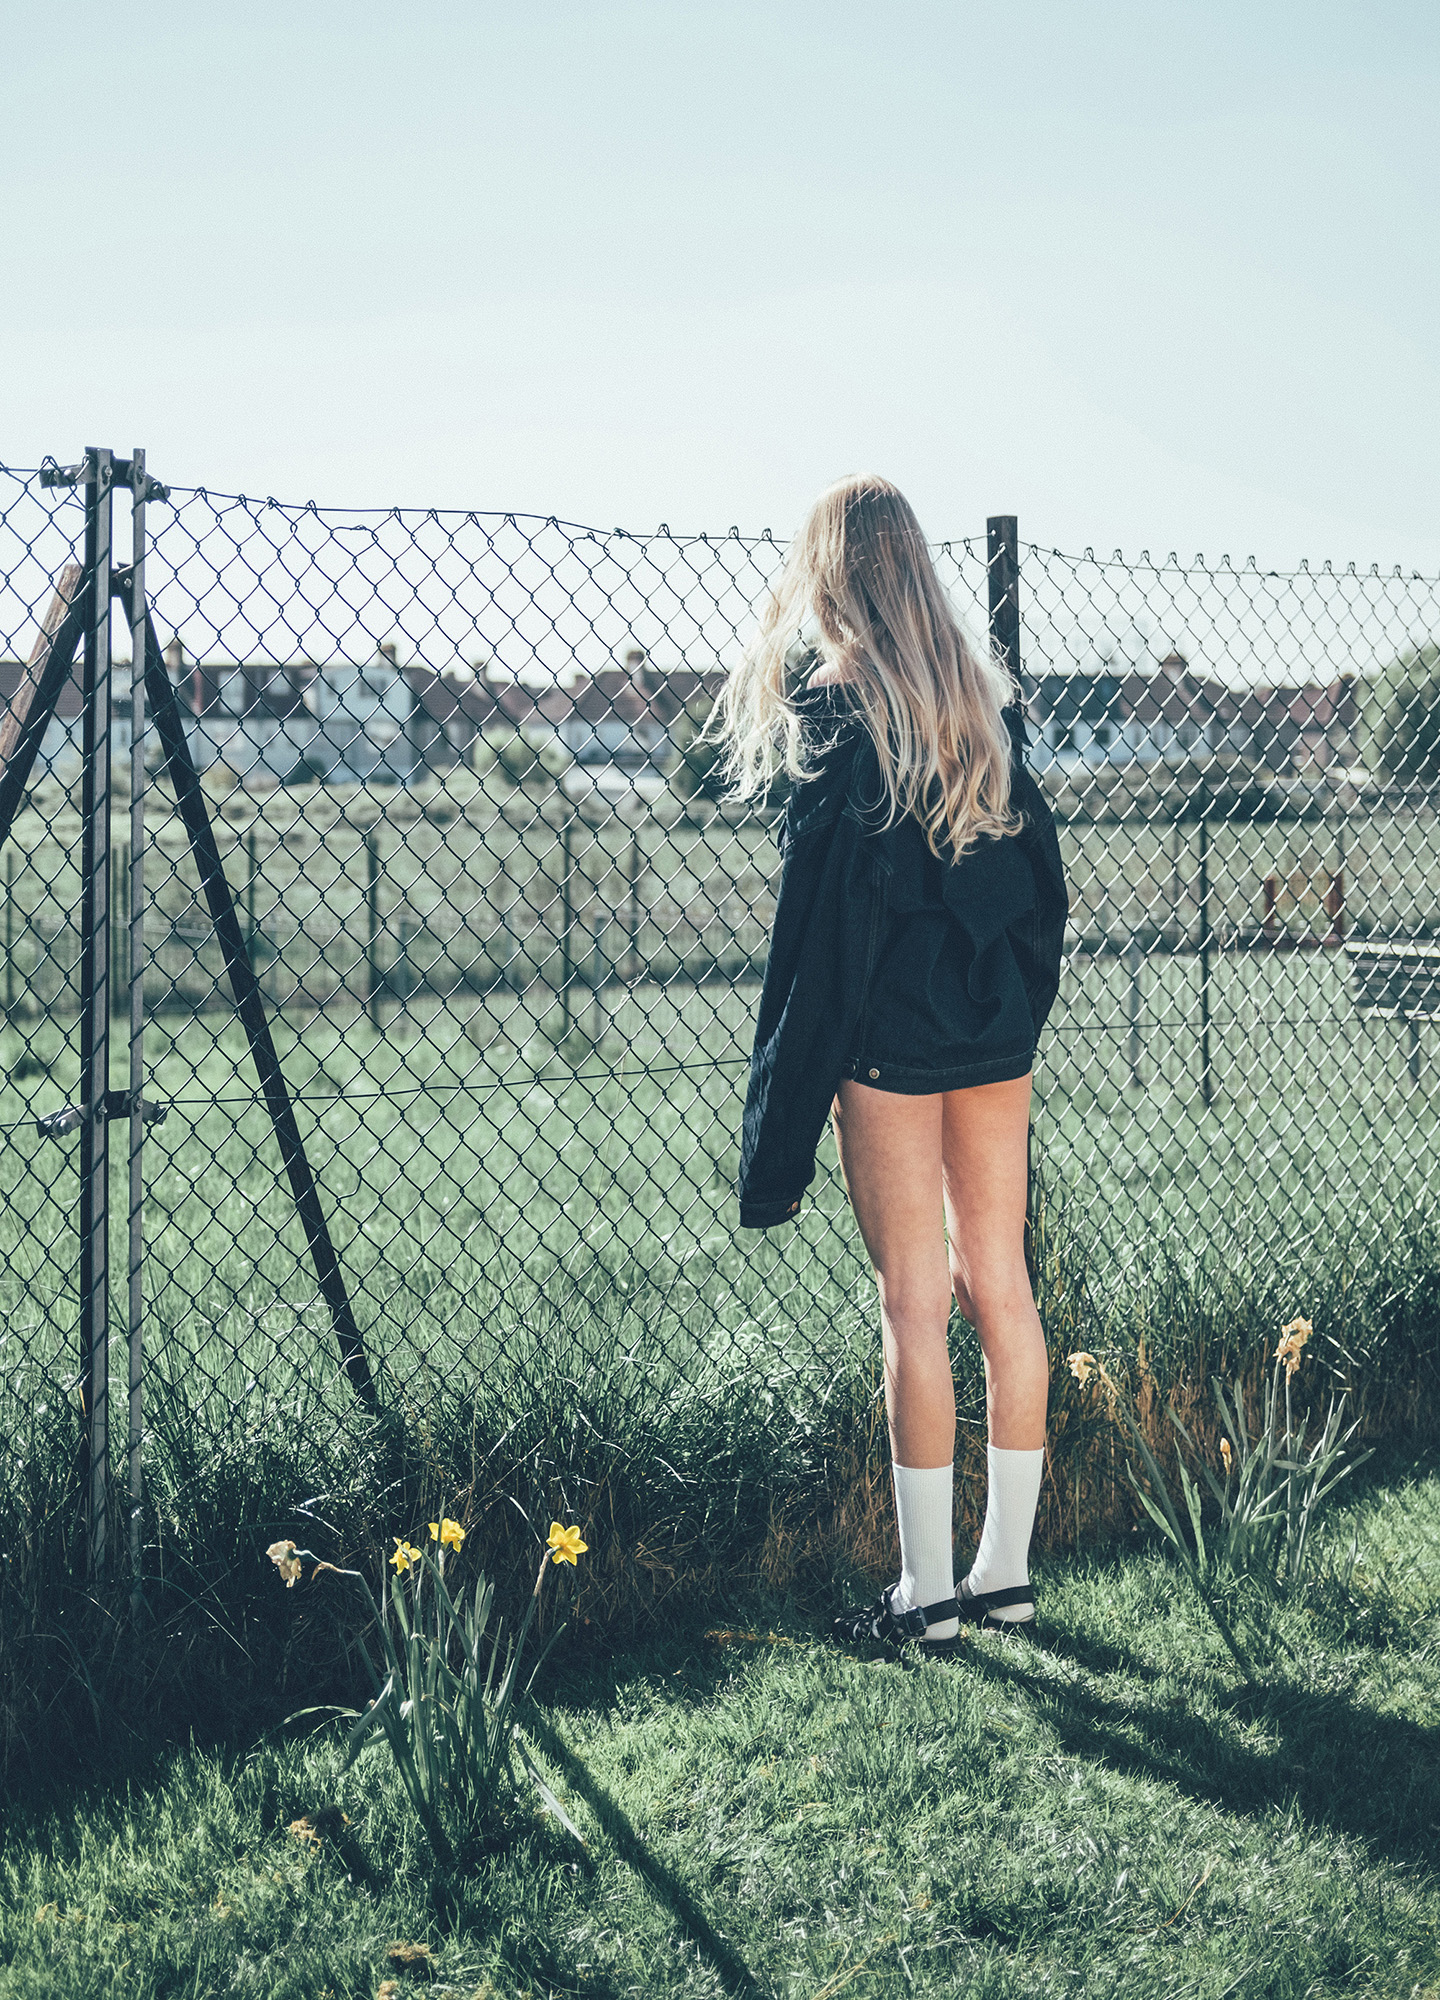 Ira Giorgetti girl looking over fence